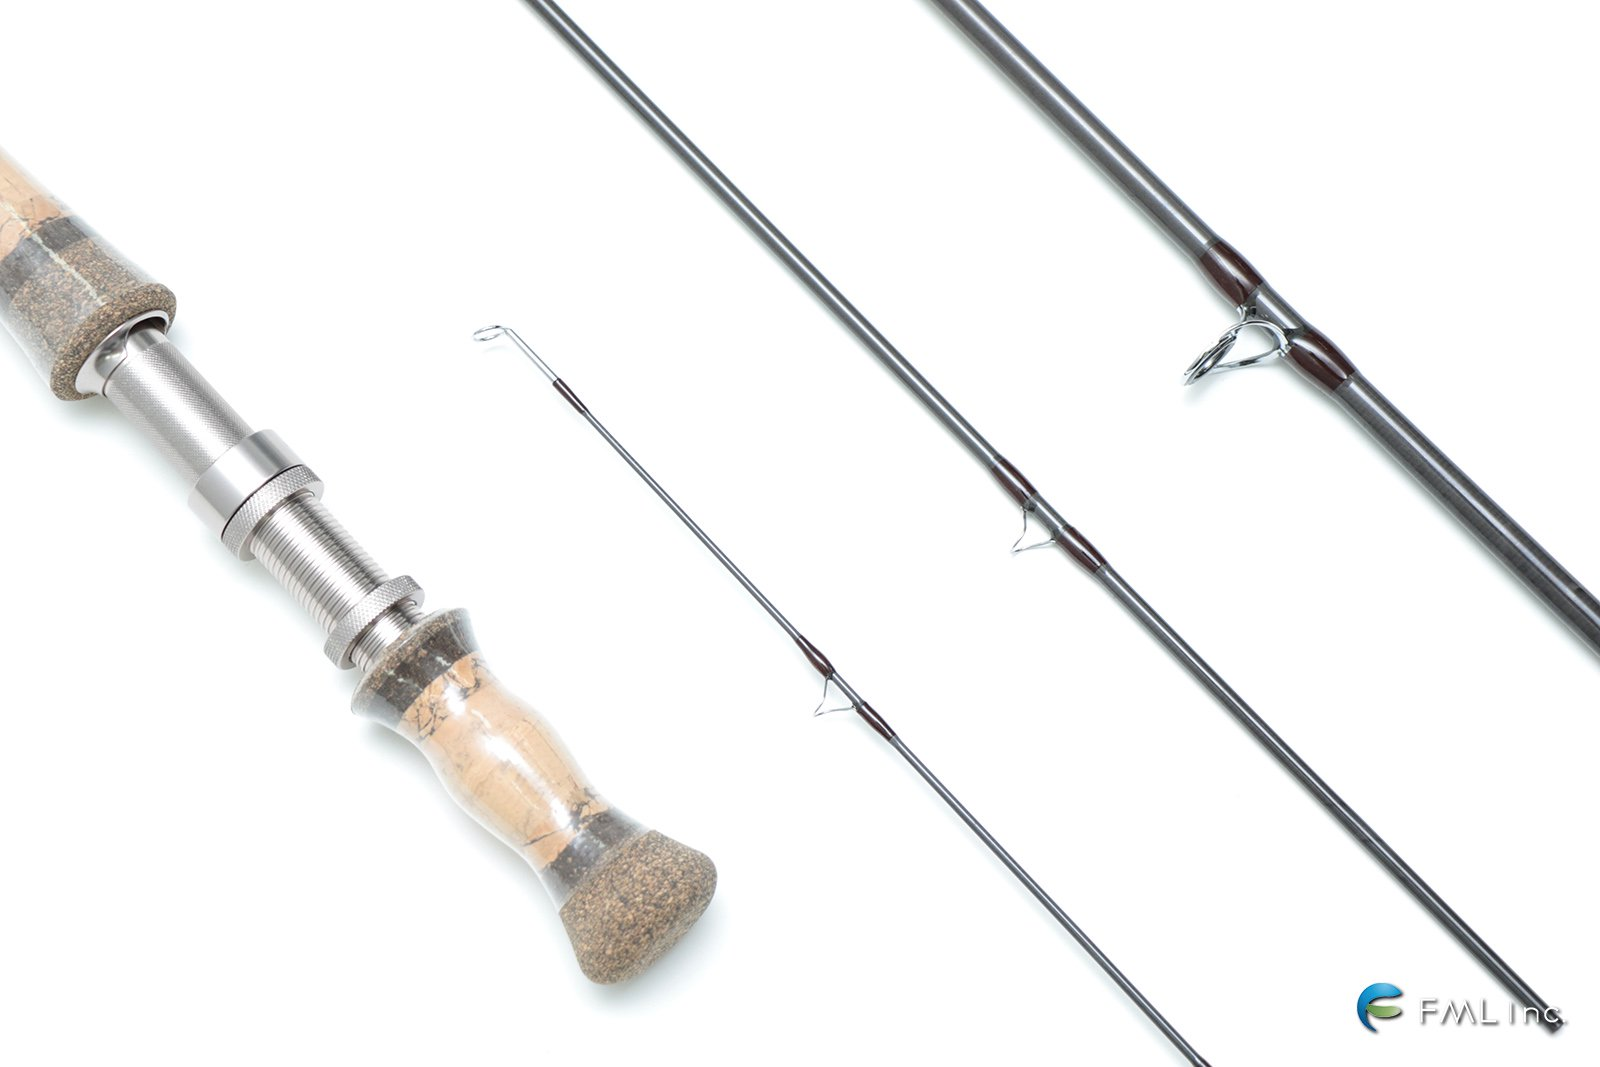 <img class='new_mark_img1' src='https://img.shop-pro.jp/img/new/icons57.gif' style='border:none;display:inline;margin:0px;padding:0px;width:auto;' />Beulah Platinum Switch Rod 5wt 10'0